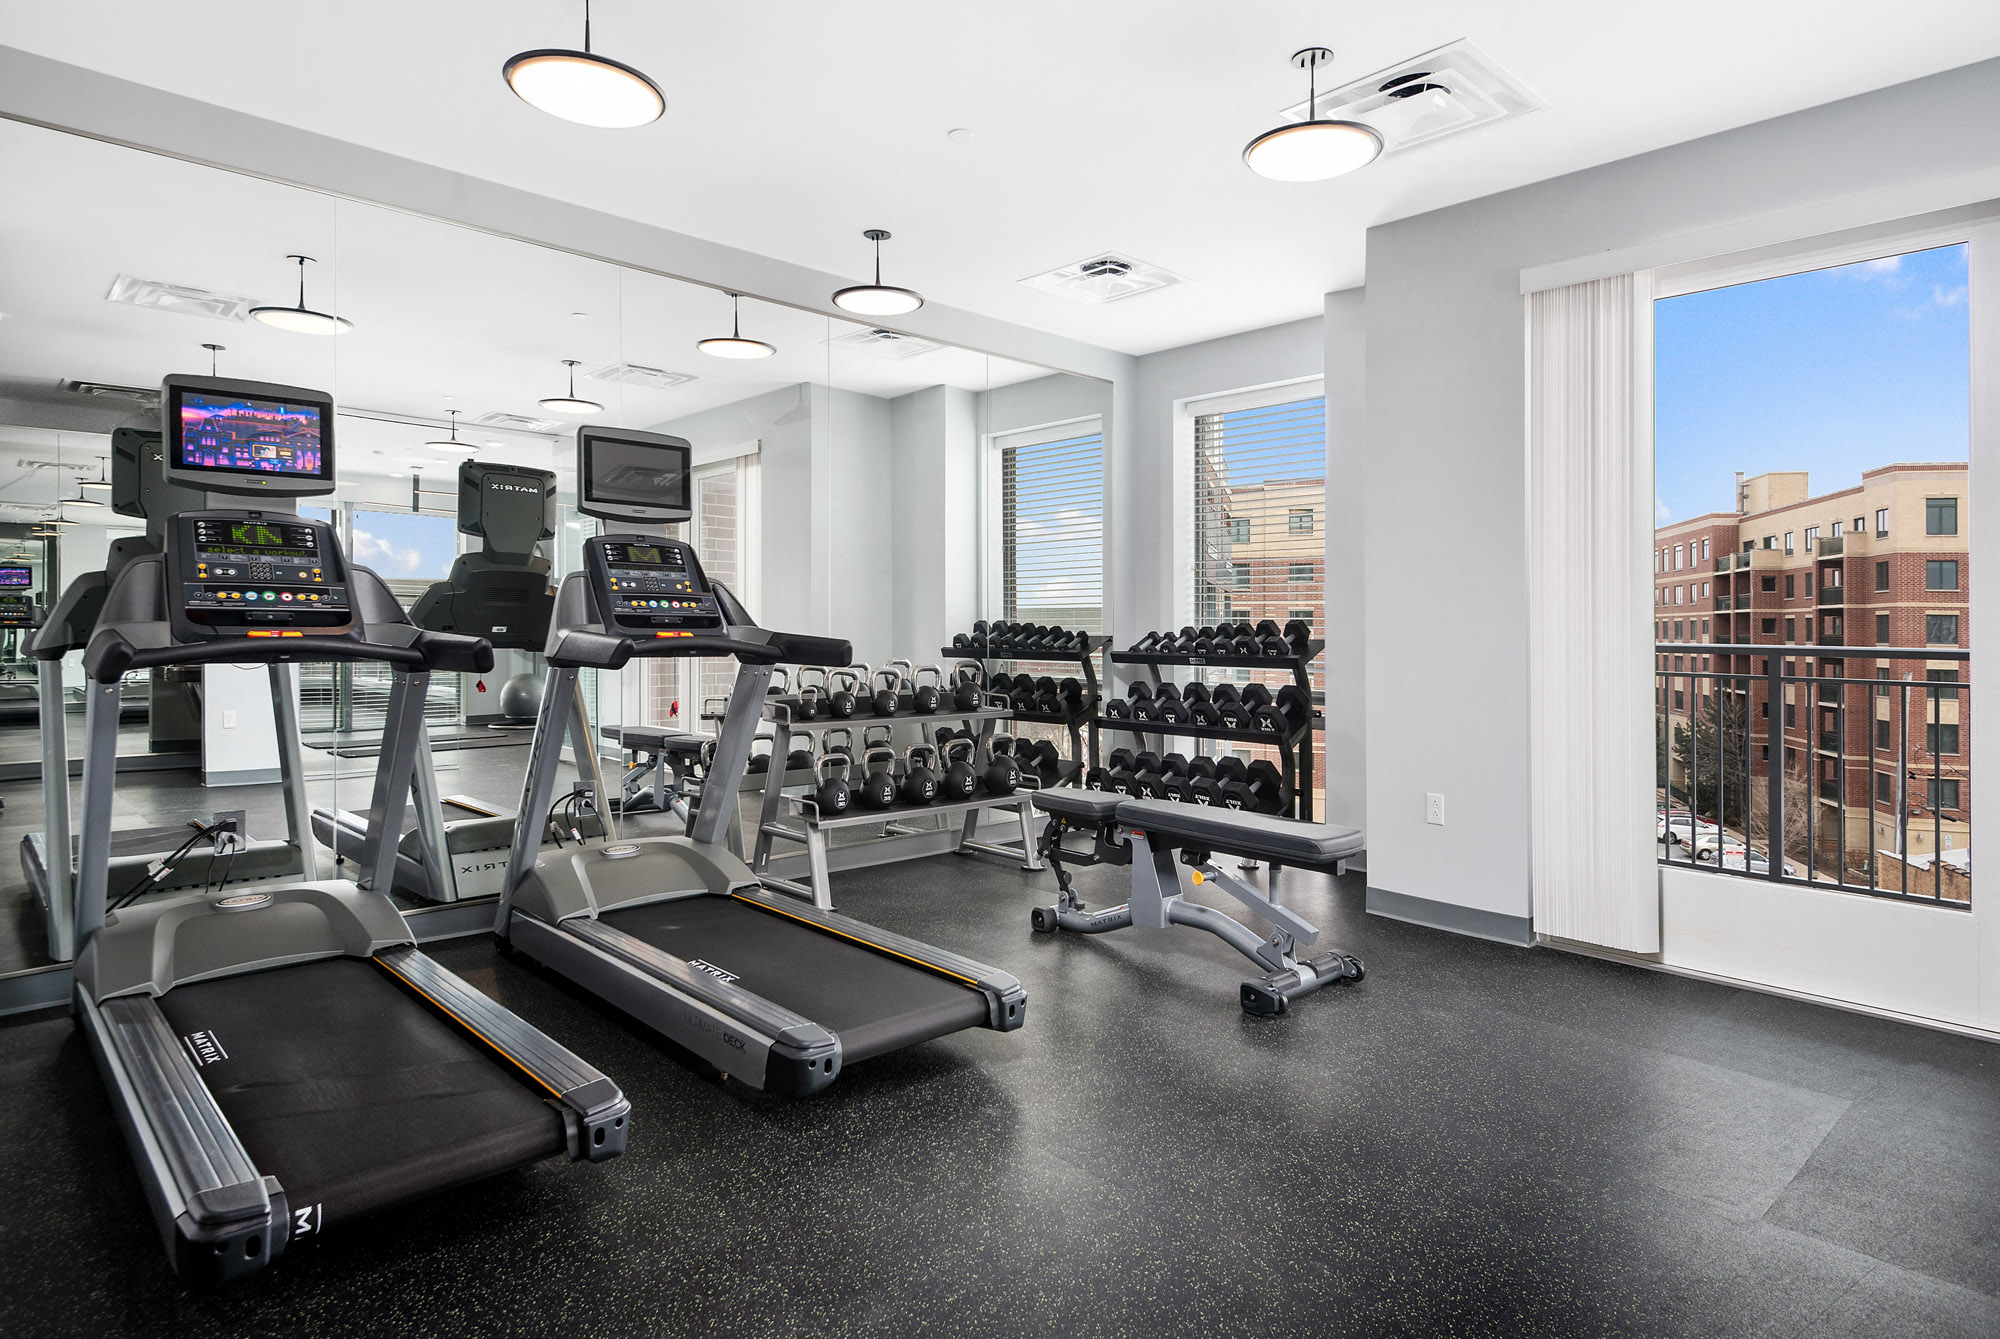 Two treadmills and free weights in the fitness center